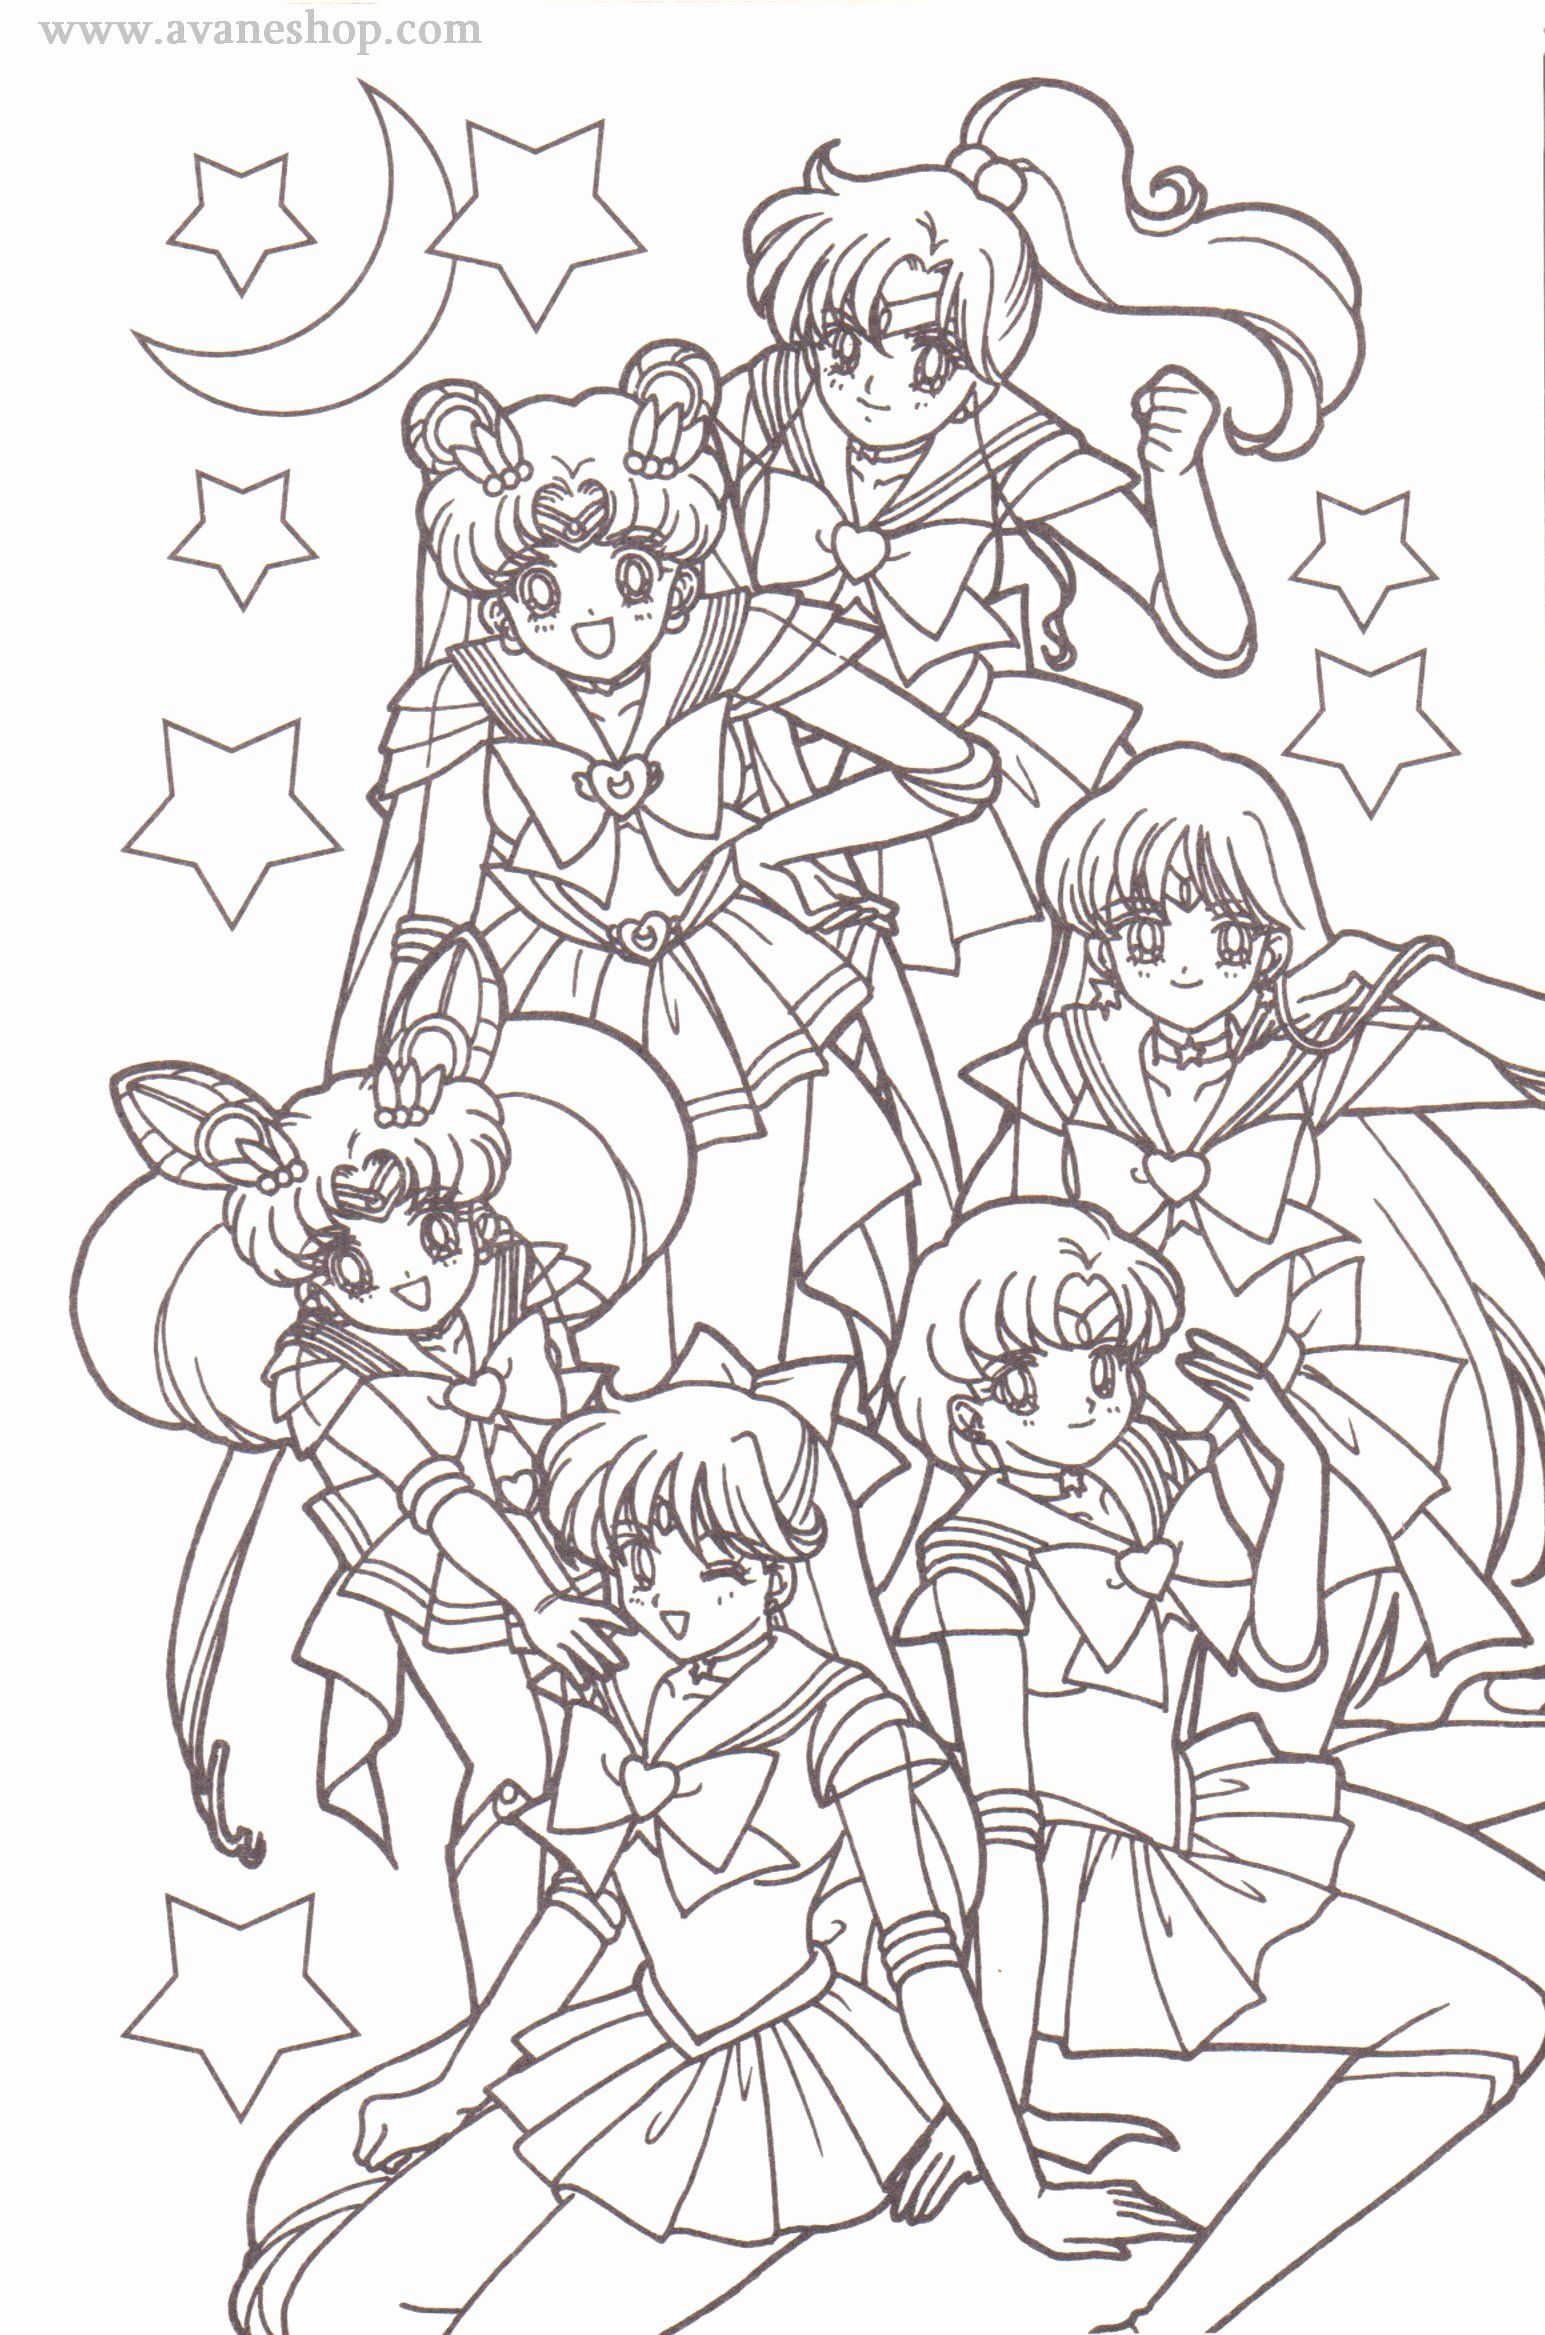 Sailor Moon Coloring Page New Sailor Moon Coloring Pages Avaneshop Avane Vintage Toys Sailor Moon Coloring Pages Moon Coloring Pages Chibi Coloring Pages